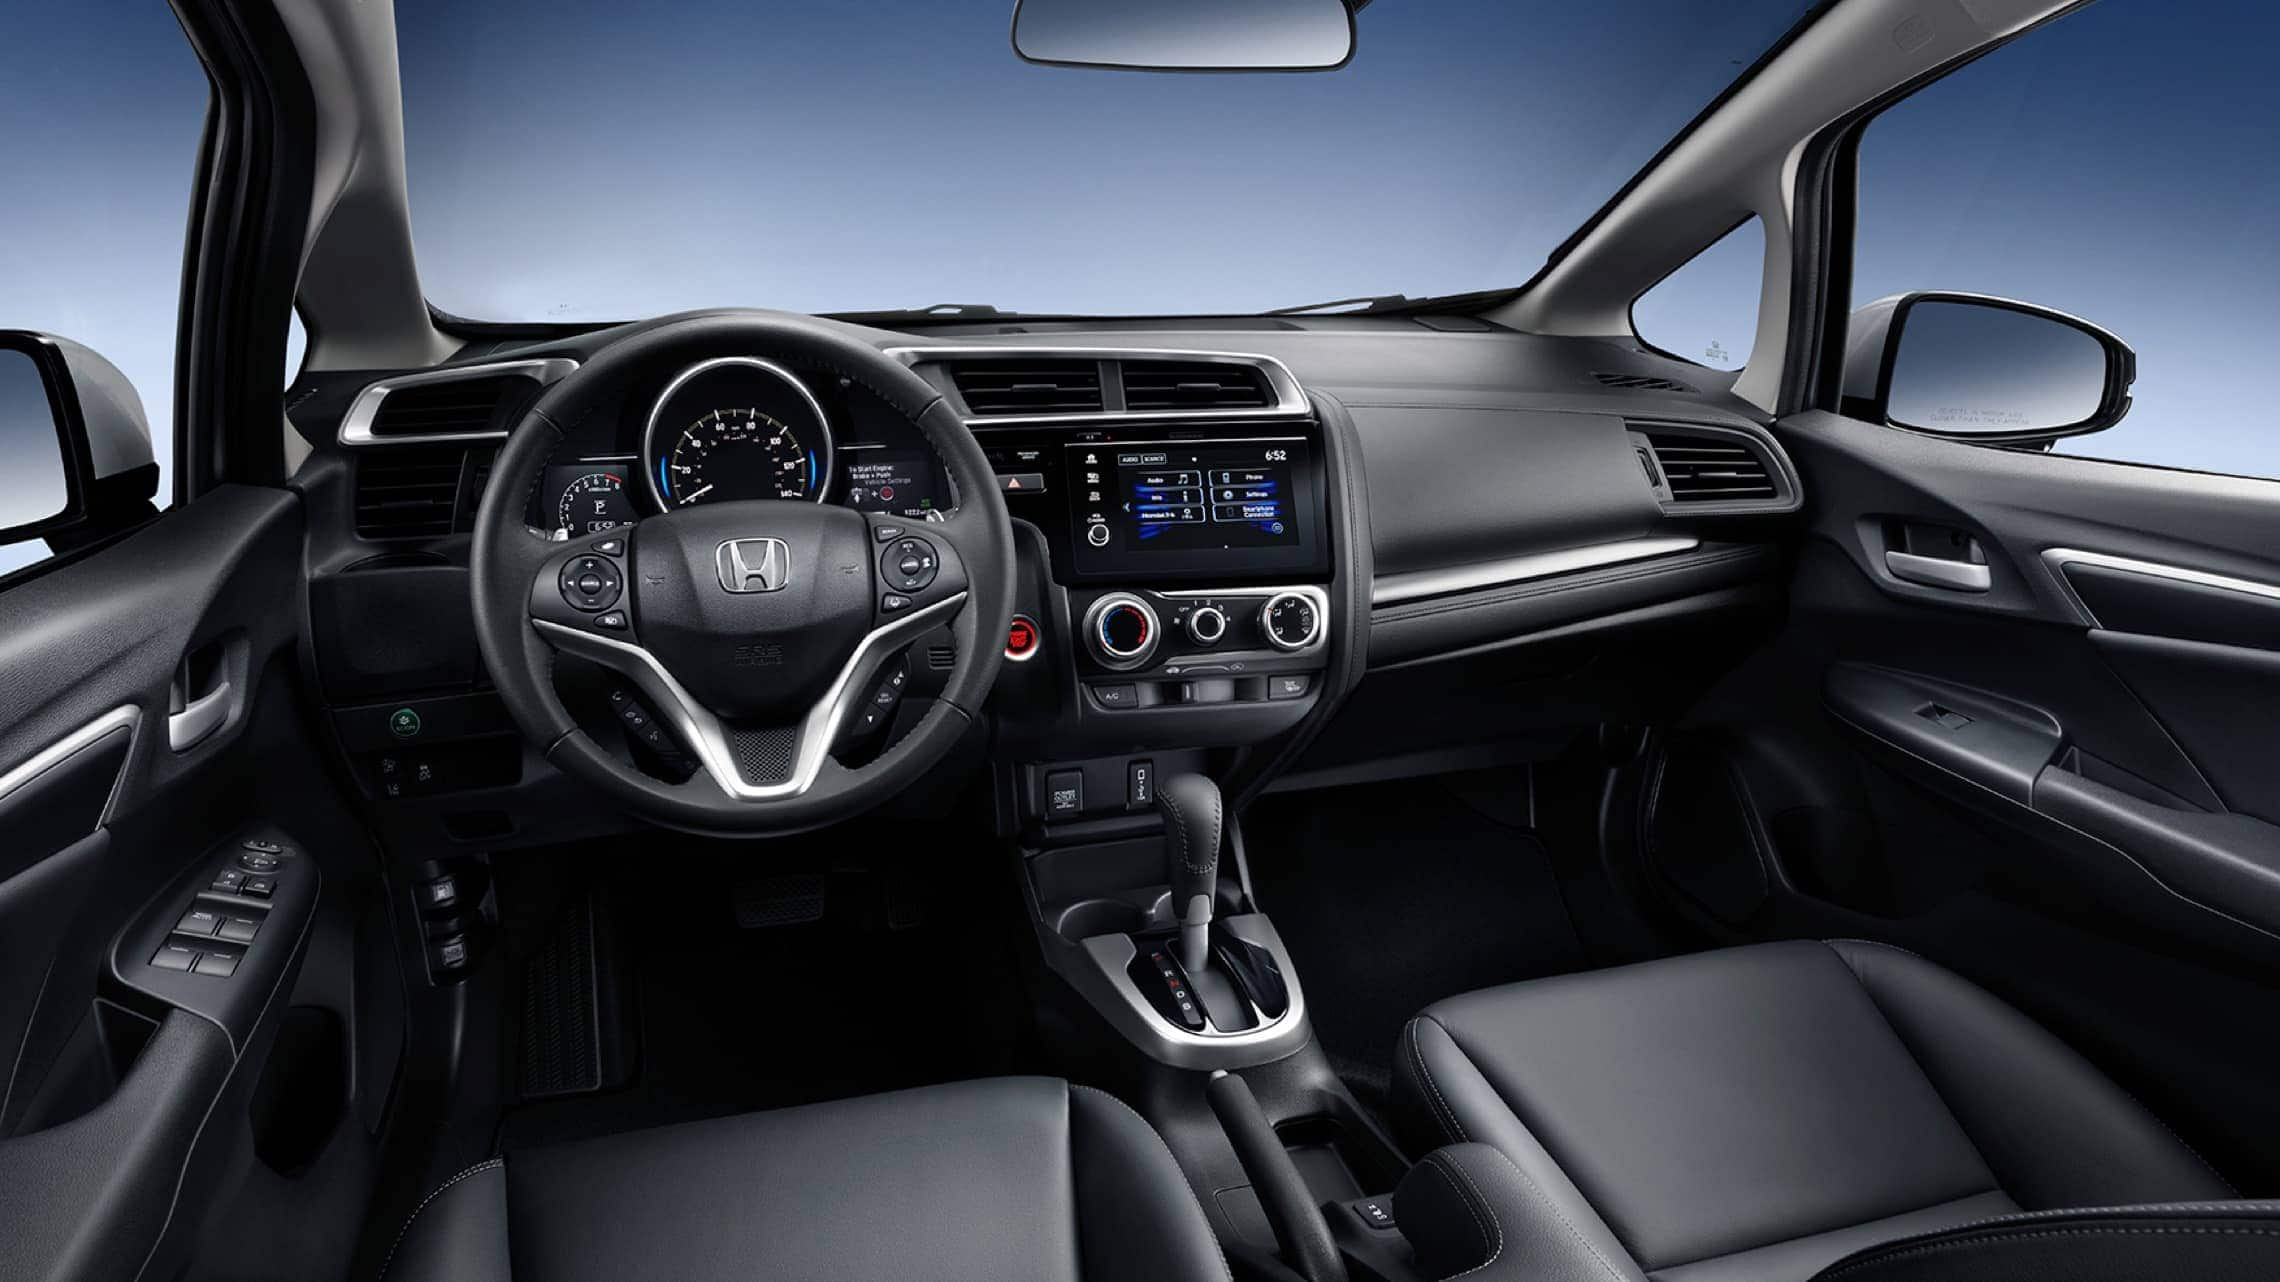 2019 Honda Fit EX-L leather-wrapped steering wheel detail in Black Leather.